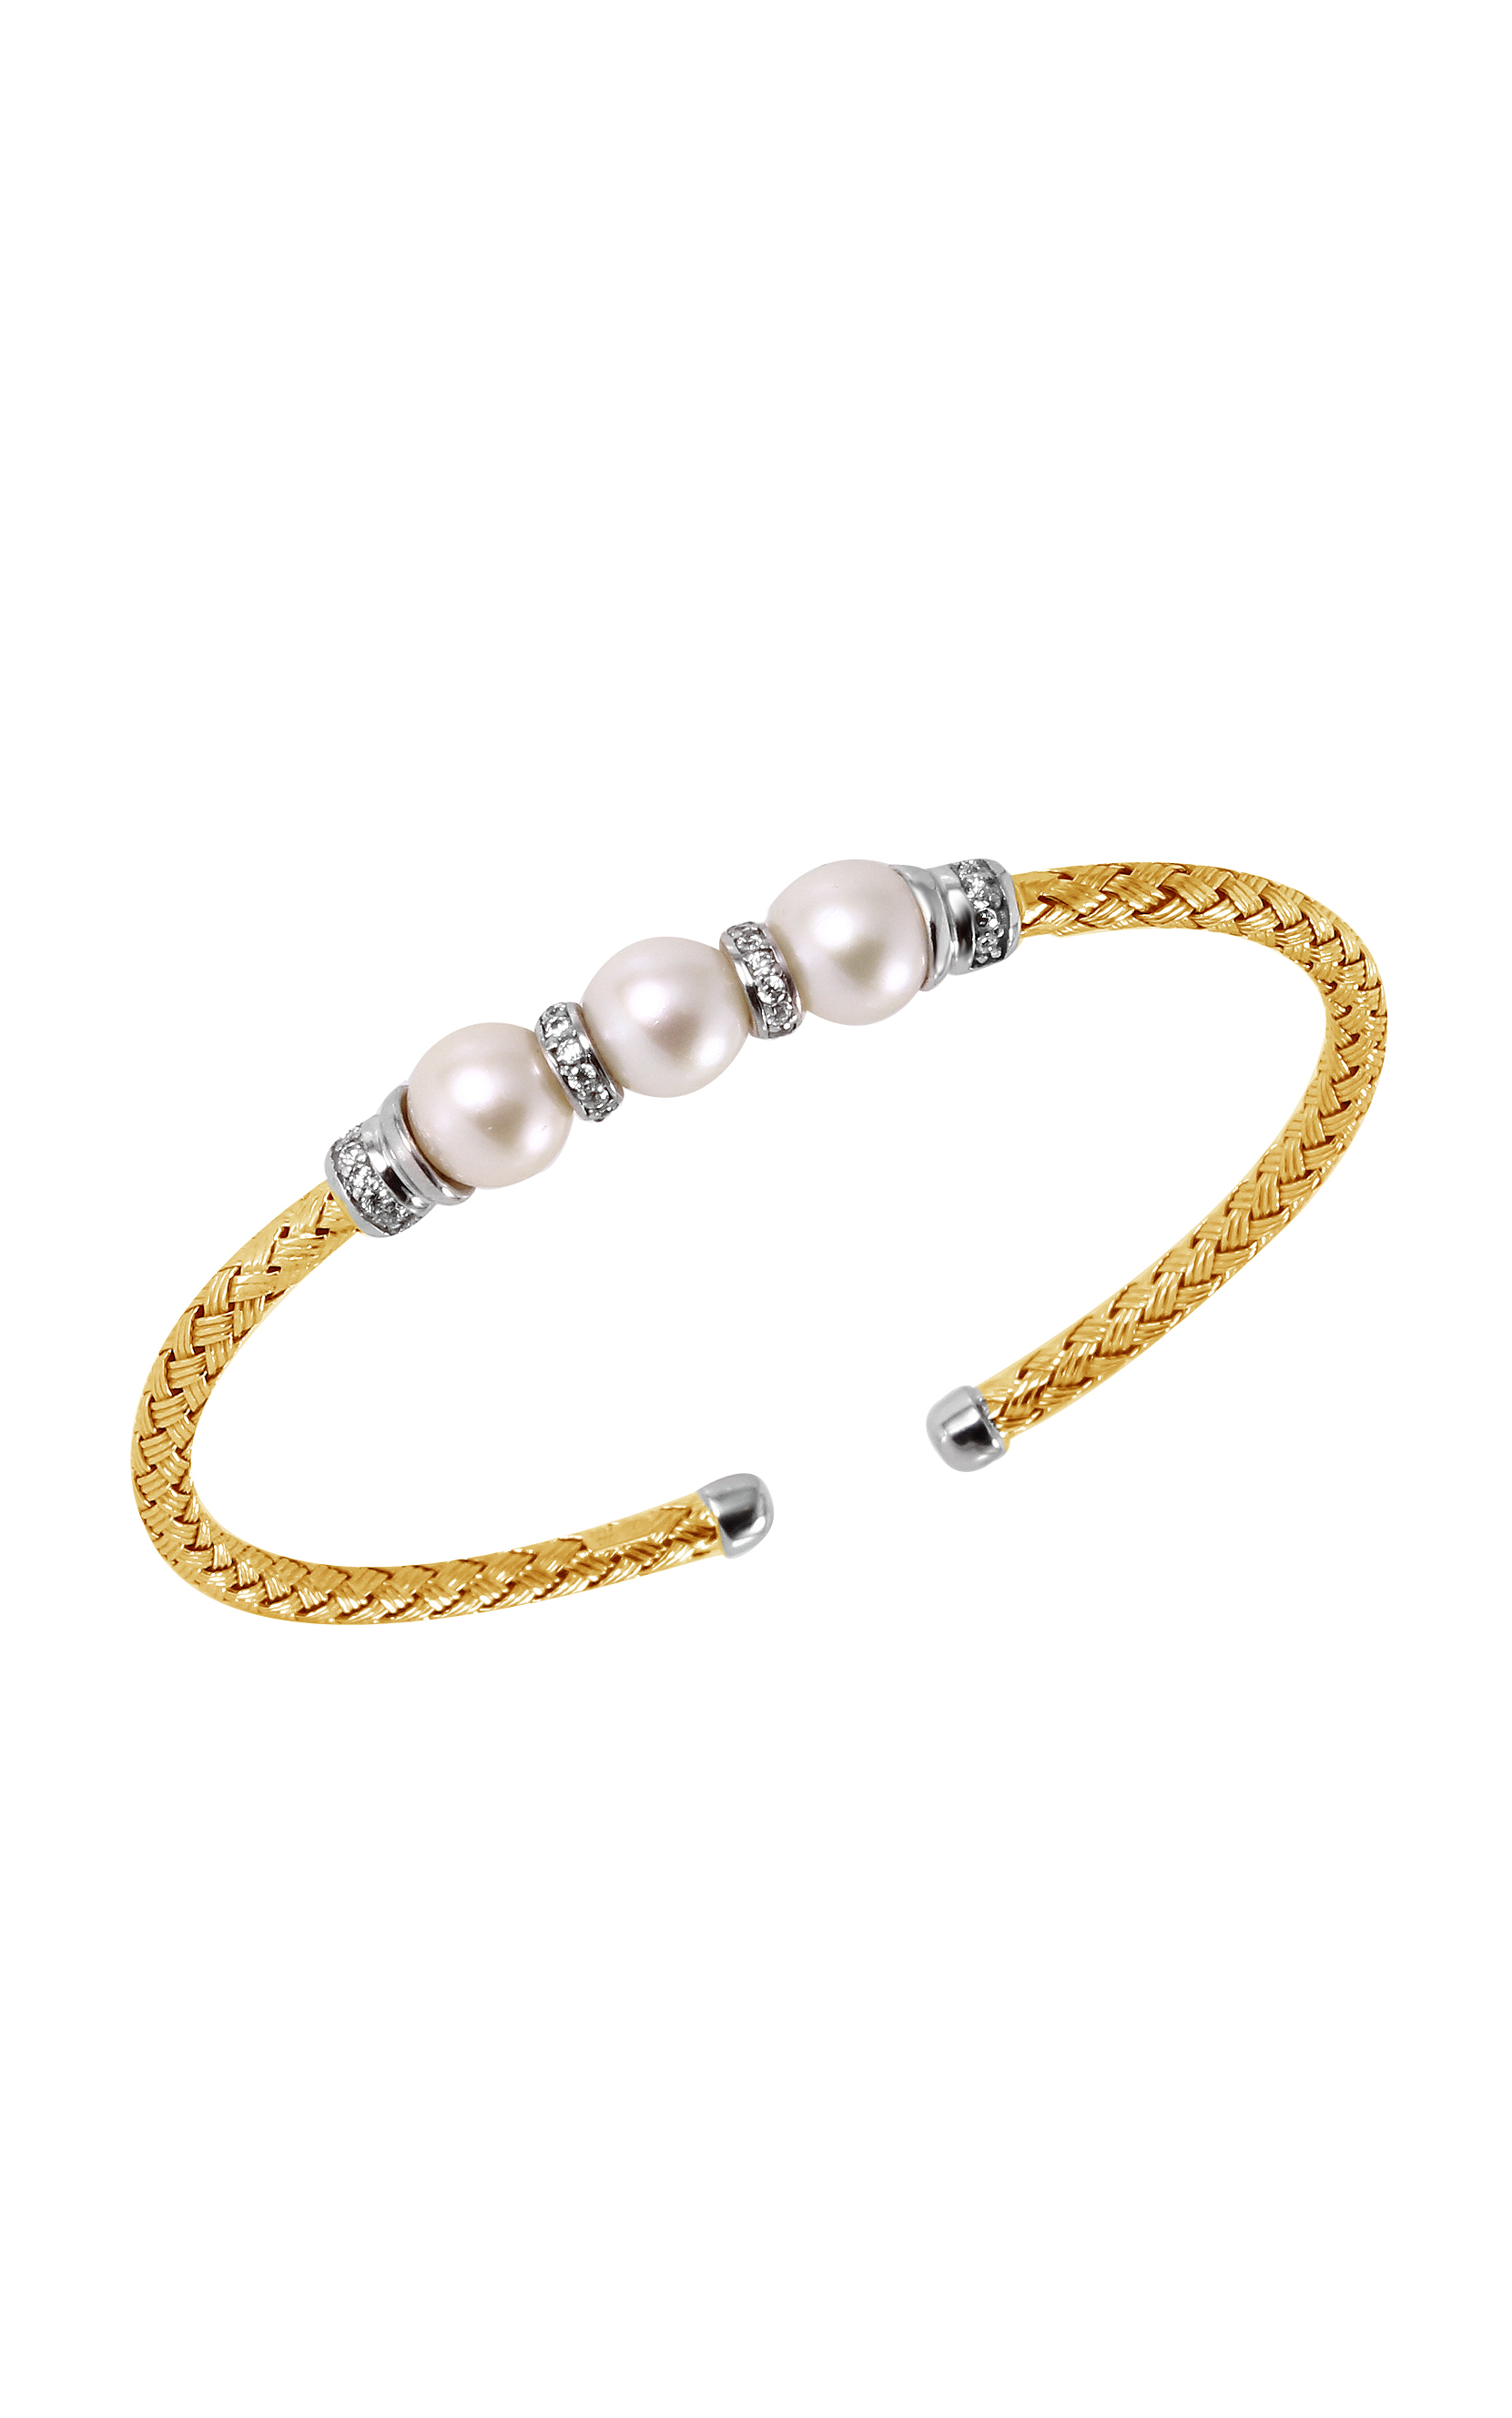 Charles Garnier Bracelets Bracelet Paolo Collection MLC8185YWPZ product image